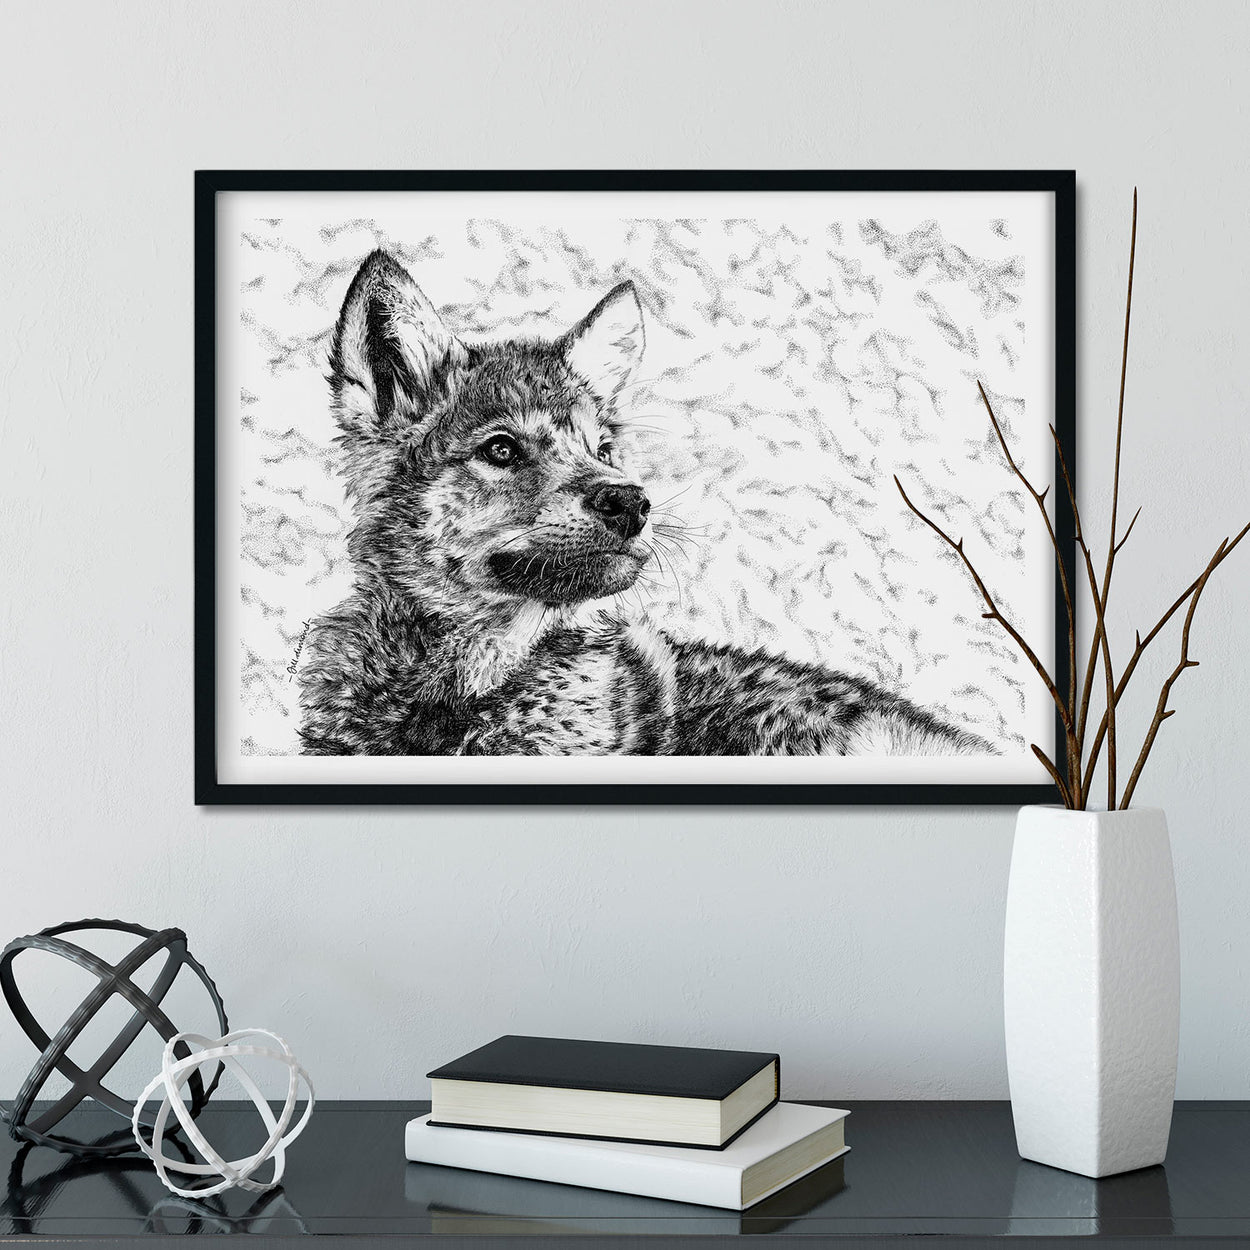 Wolf Cub Wall Art Framed - The Thriving Wild